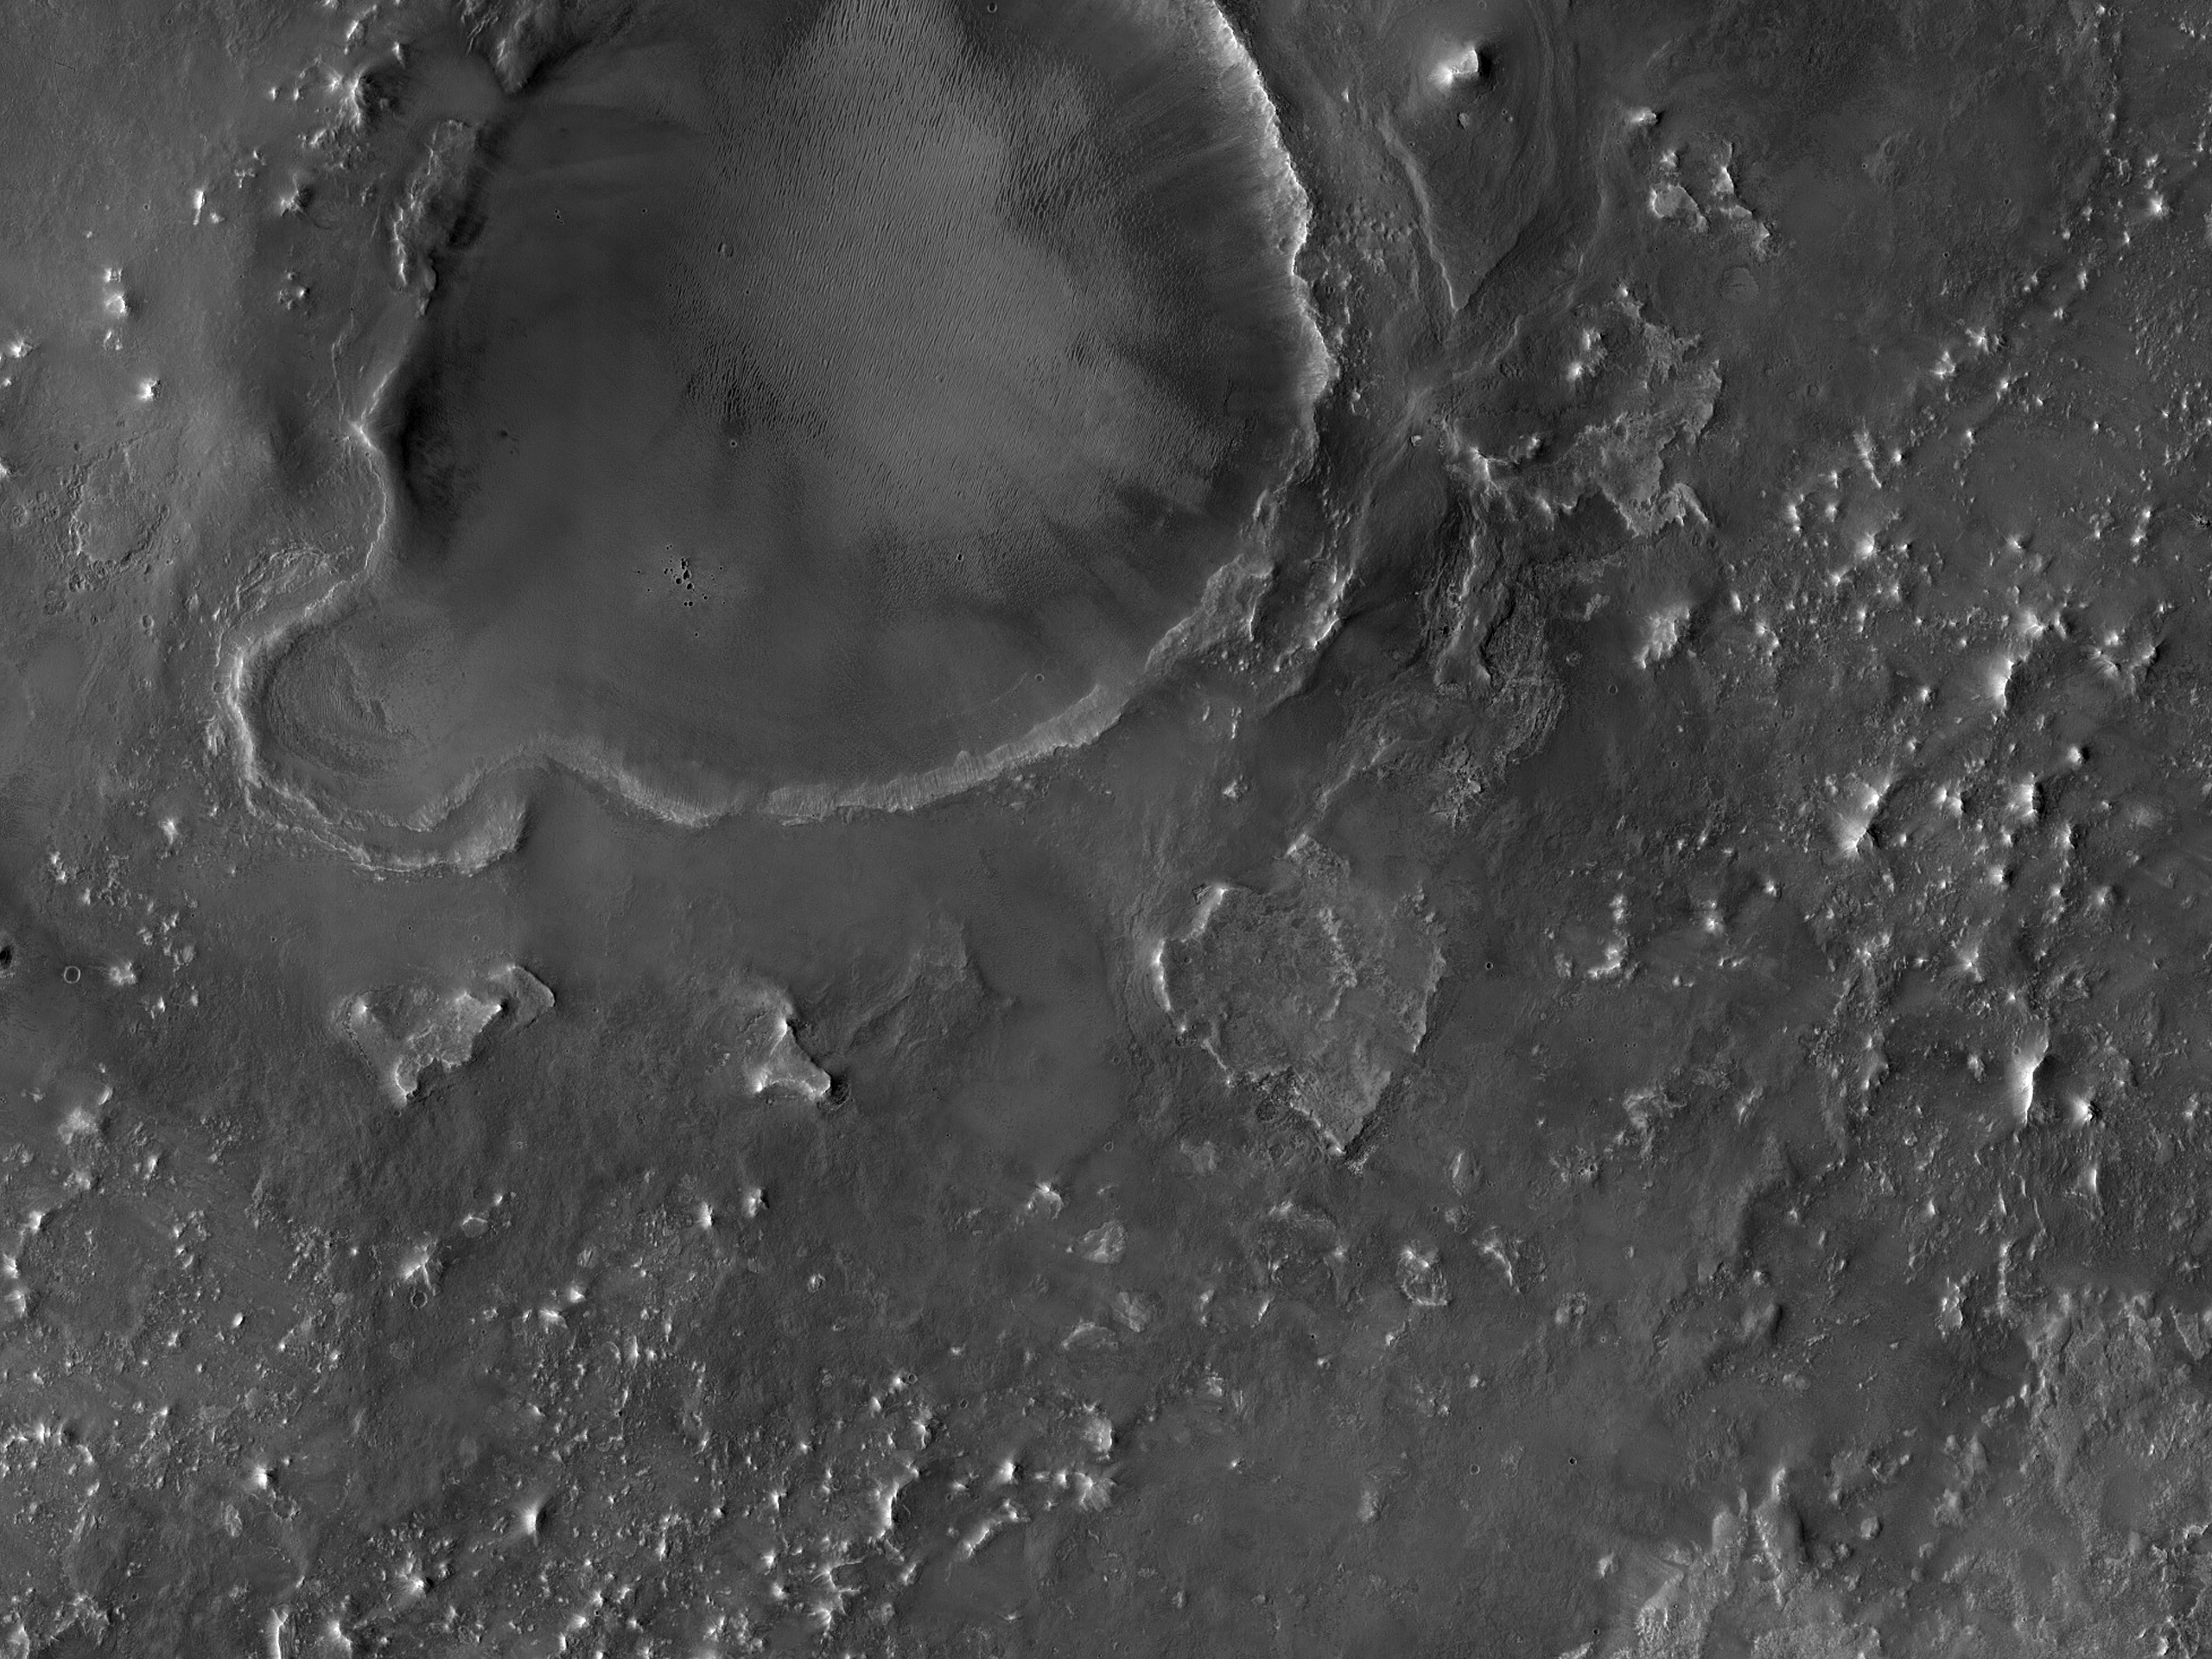 On the Southeast Rim of Antoniadi Crater